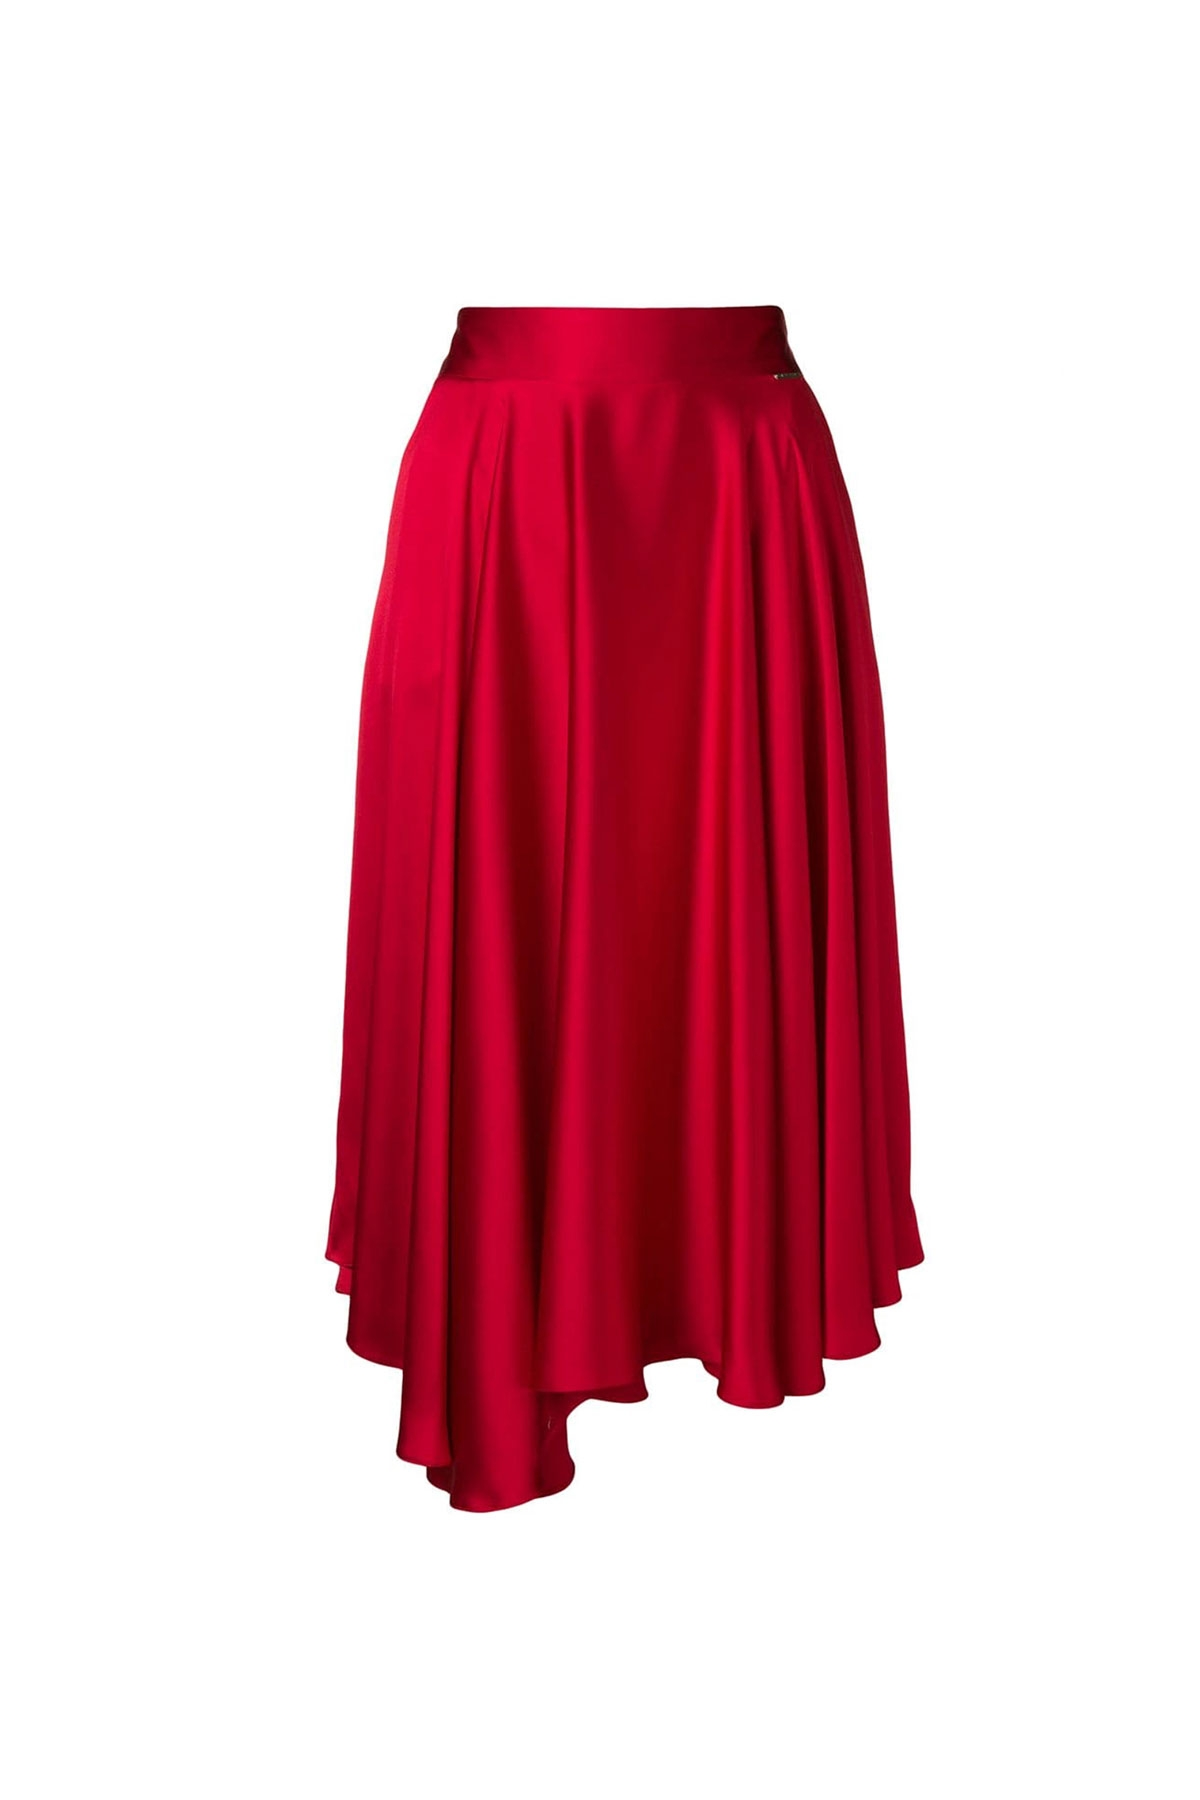 RED MIDI SKIRT WITH POCKETS